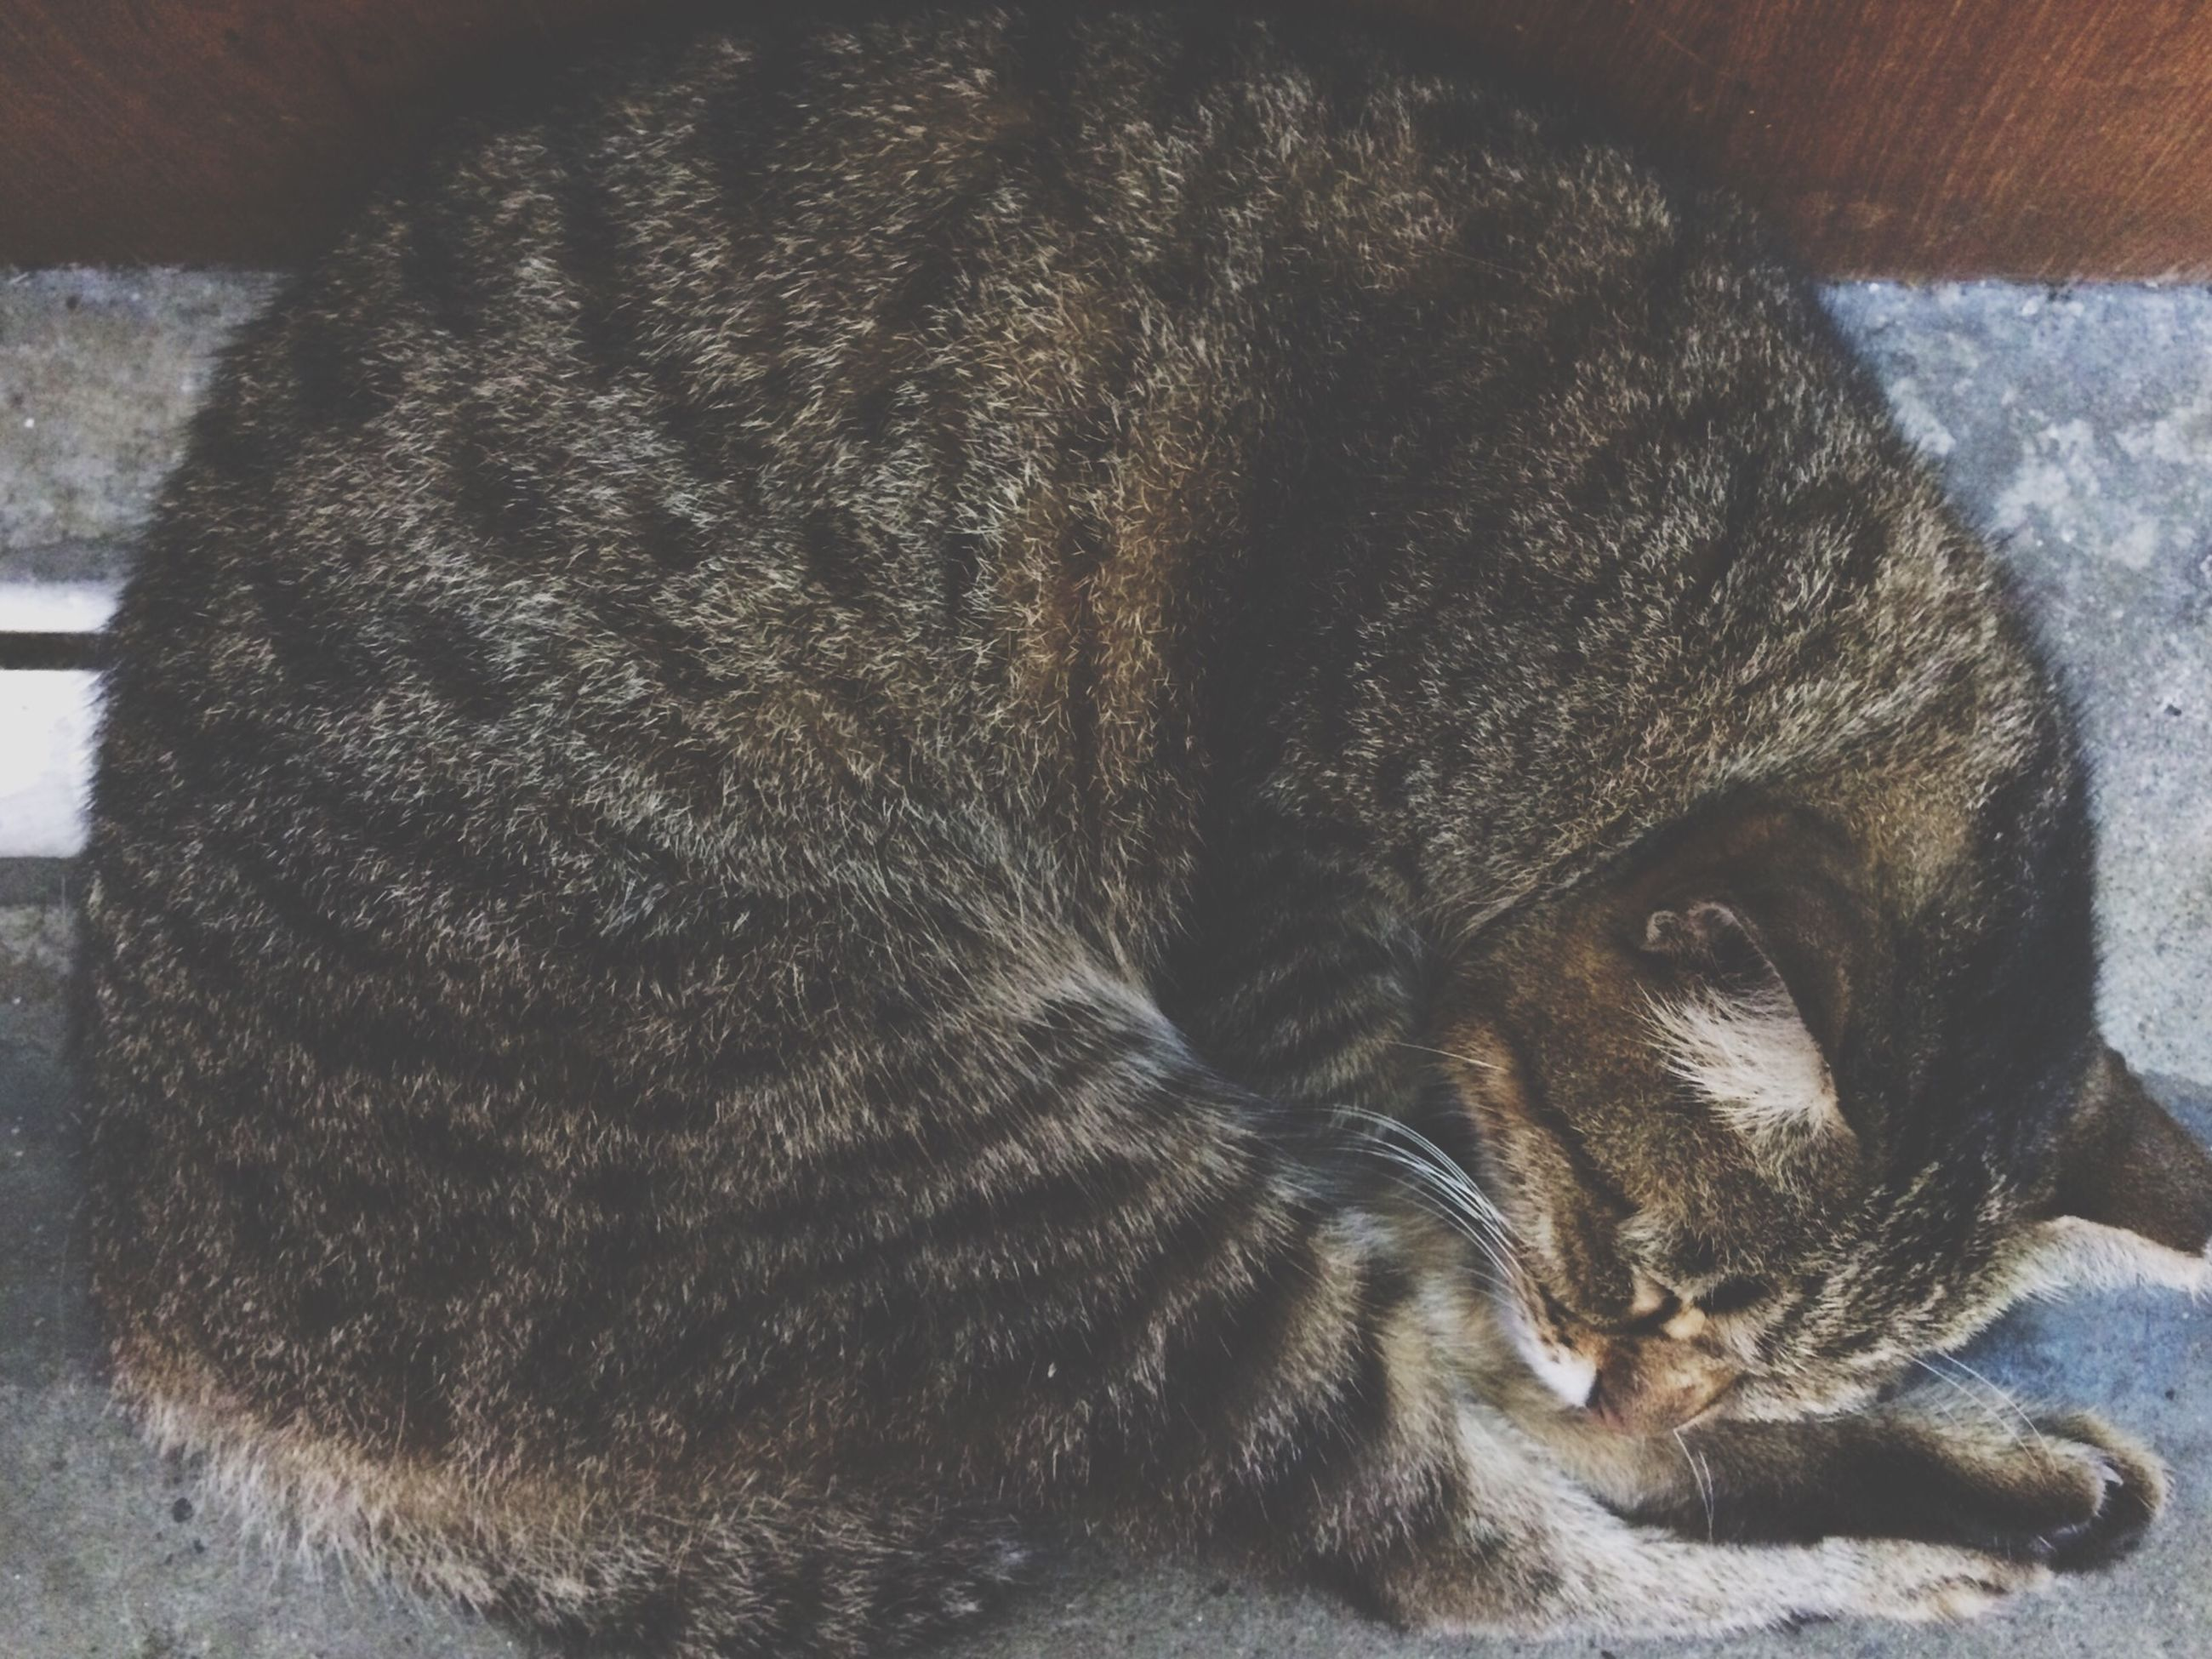 animal themes, one animal, close-up, animals in the wild, mammal, wildlife, animal body part, indoors, domestic animals, high angle view, animal head, sleeping, relaxation, pets, resting, no people, zoology, day, dead animal, lying down